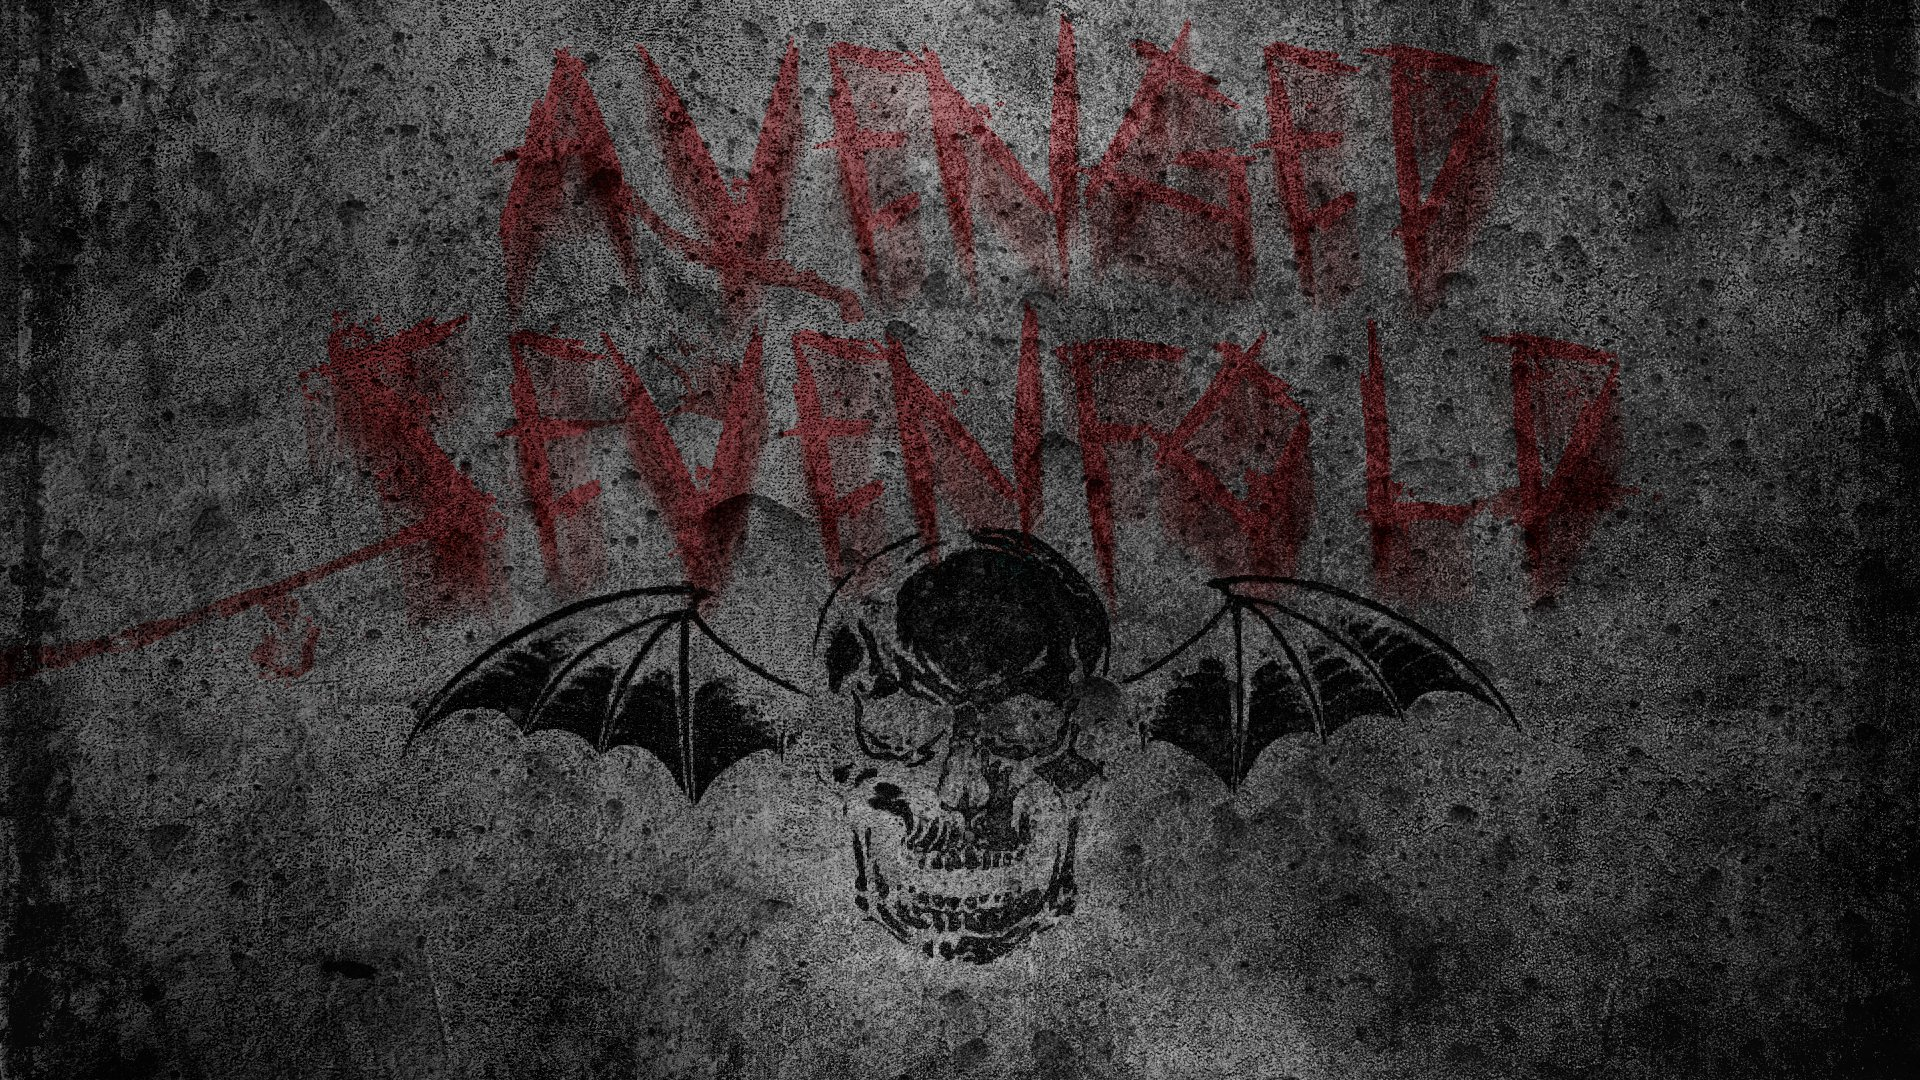 avenged sevenfold wallpaper hiddensoul fan art other   Quotekocom 1920x1080